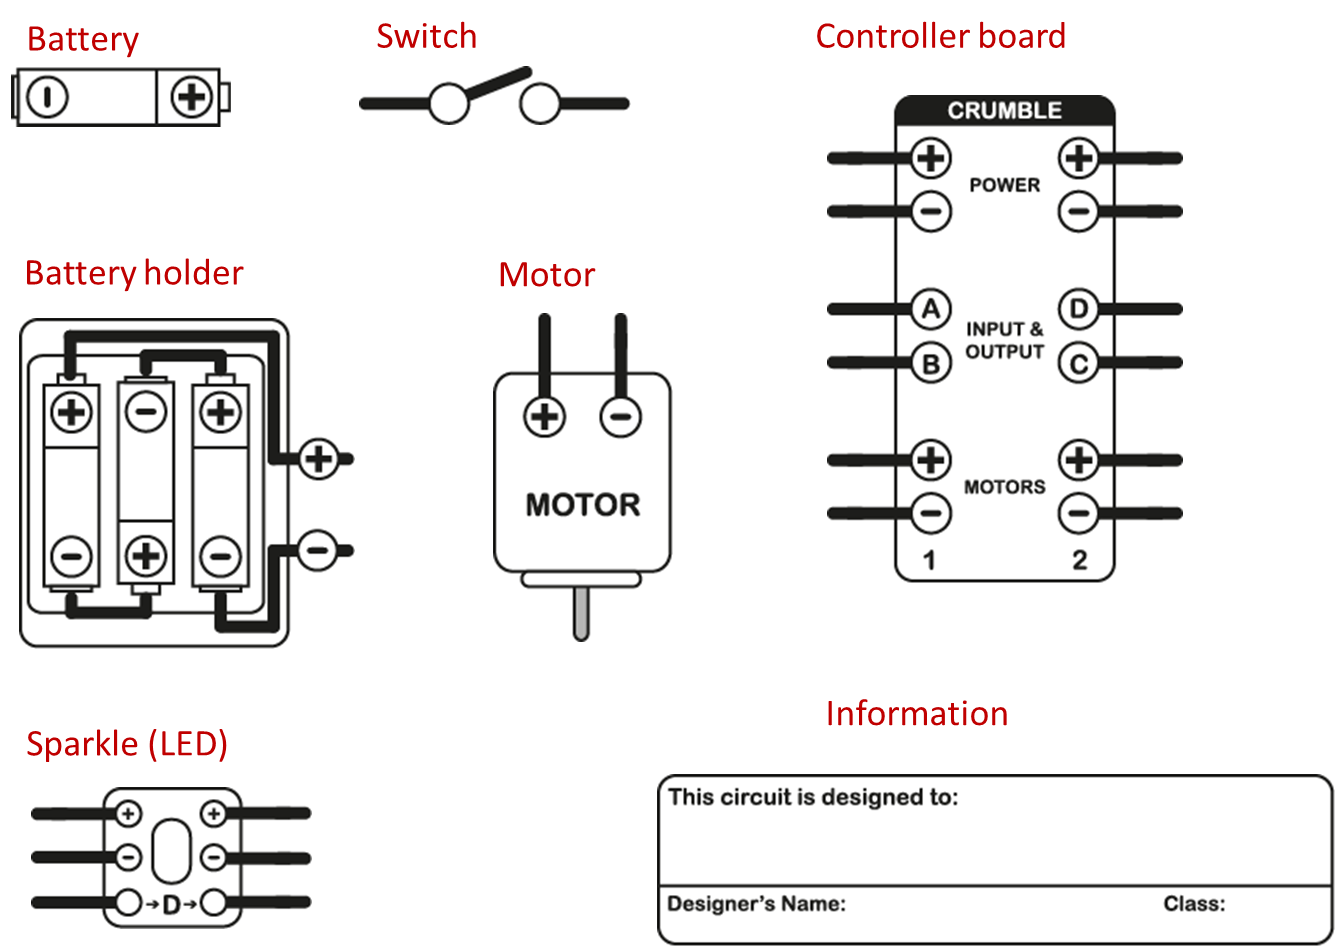 crumble circuit design components